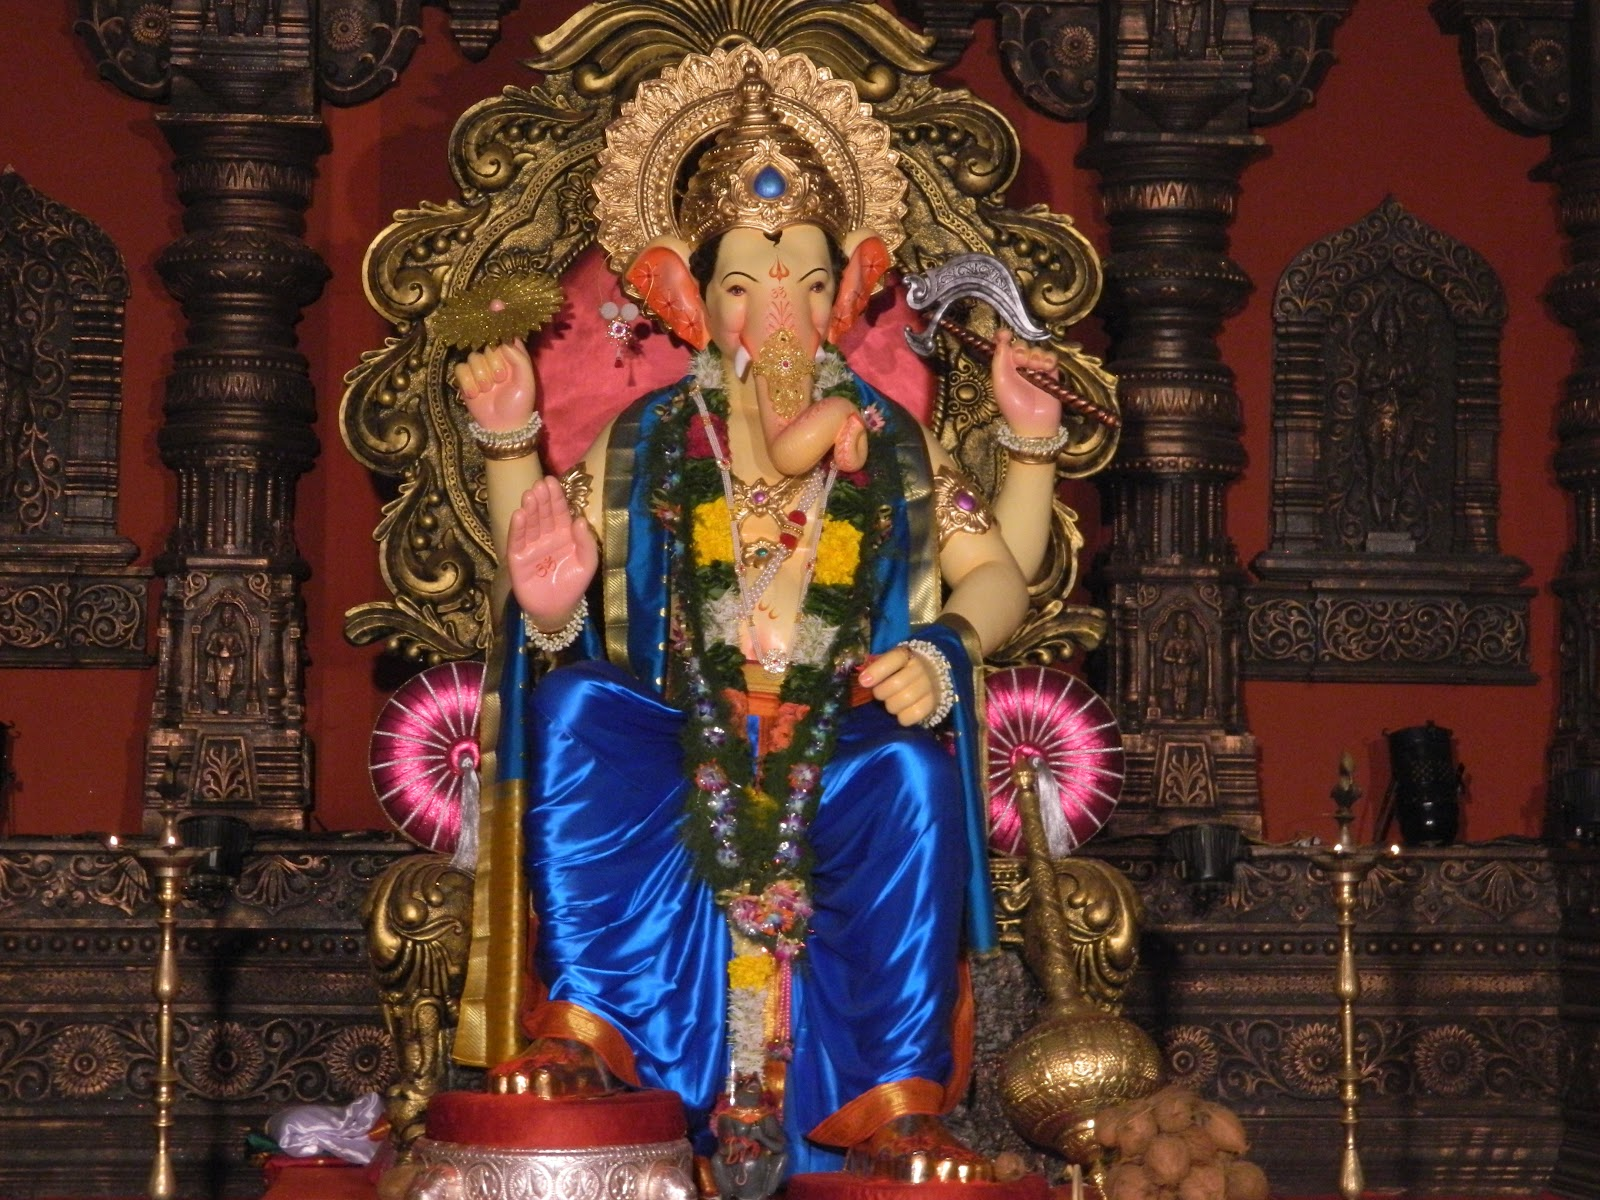 Lord Ganesha Wallpapers Hd For Windows 7 Hare Krishna Shri Ganesh Wallpaper 7